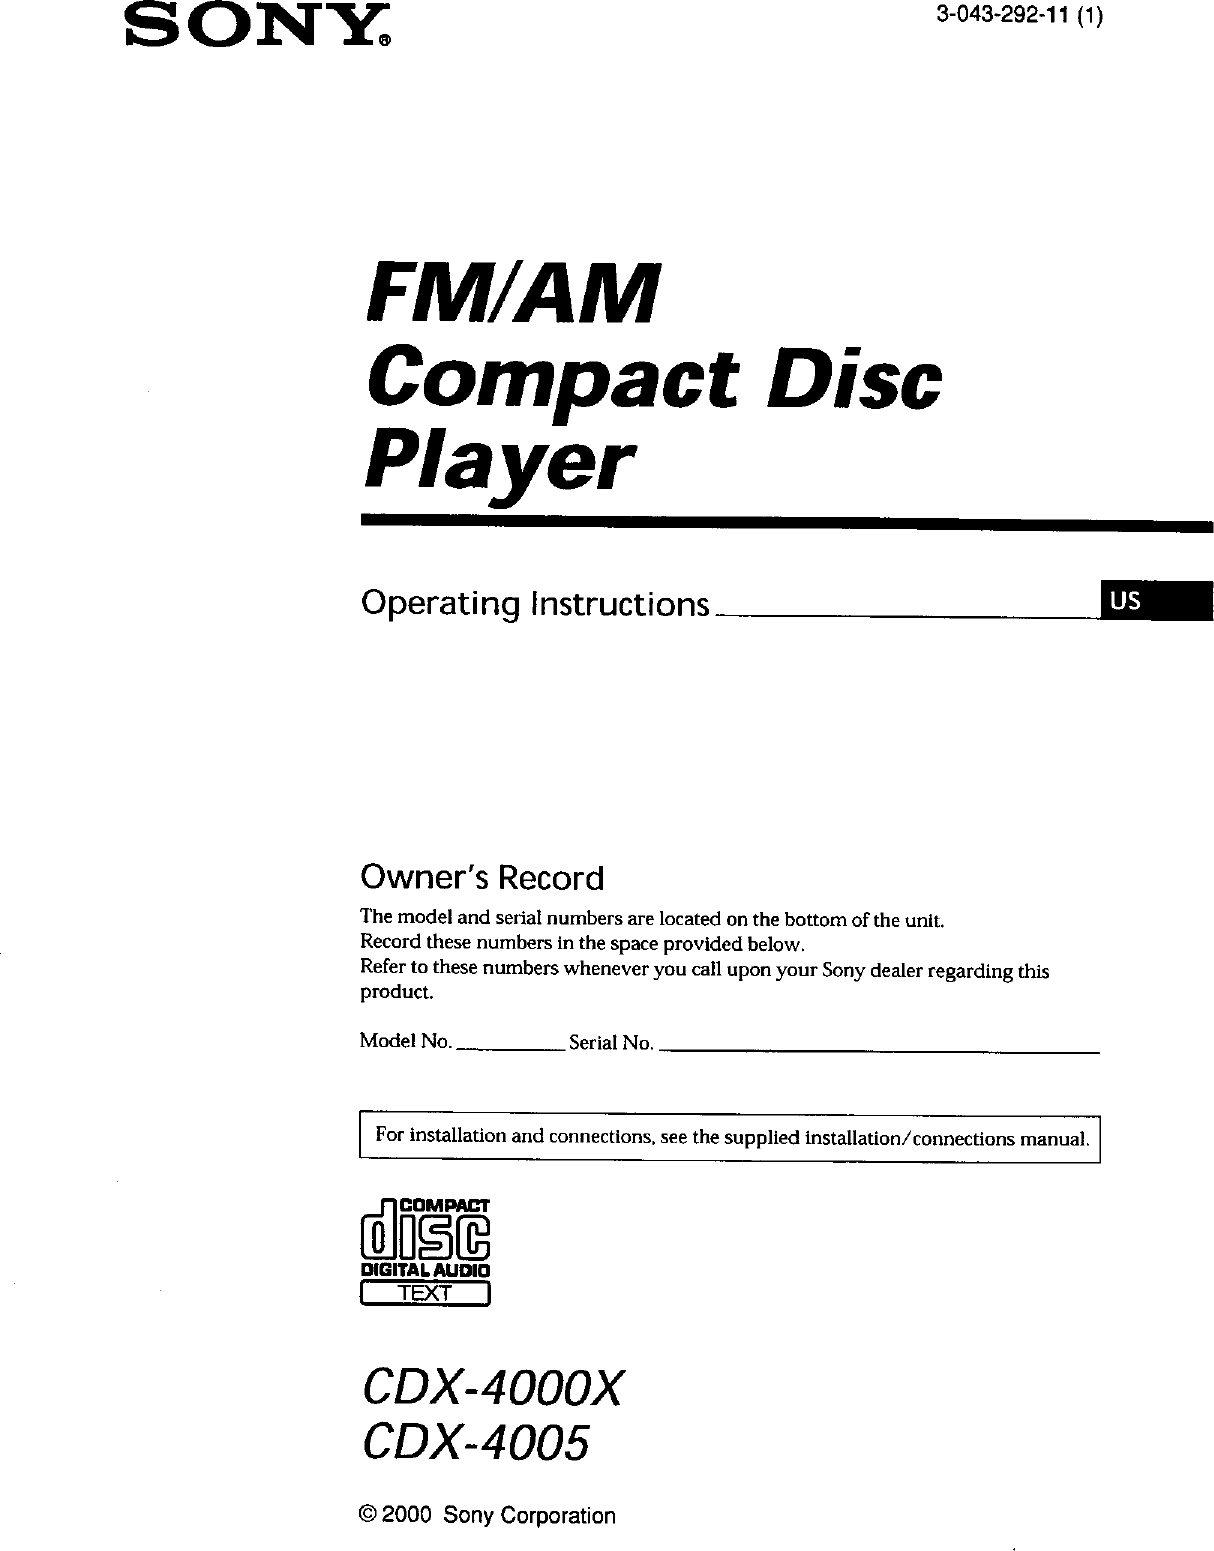 Sony CDX 4000X User Manual Compact Disc Manuals And Guides L0040170  UserManual.wiki